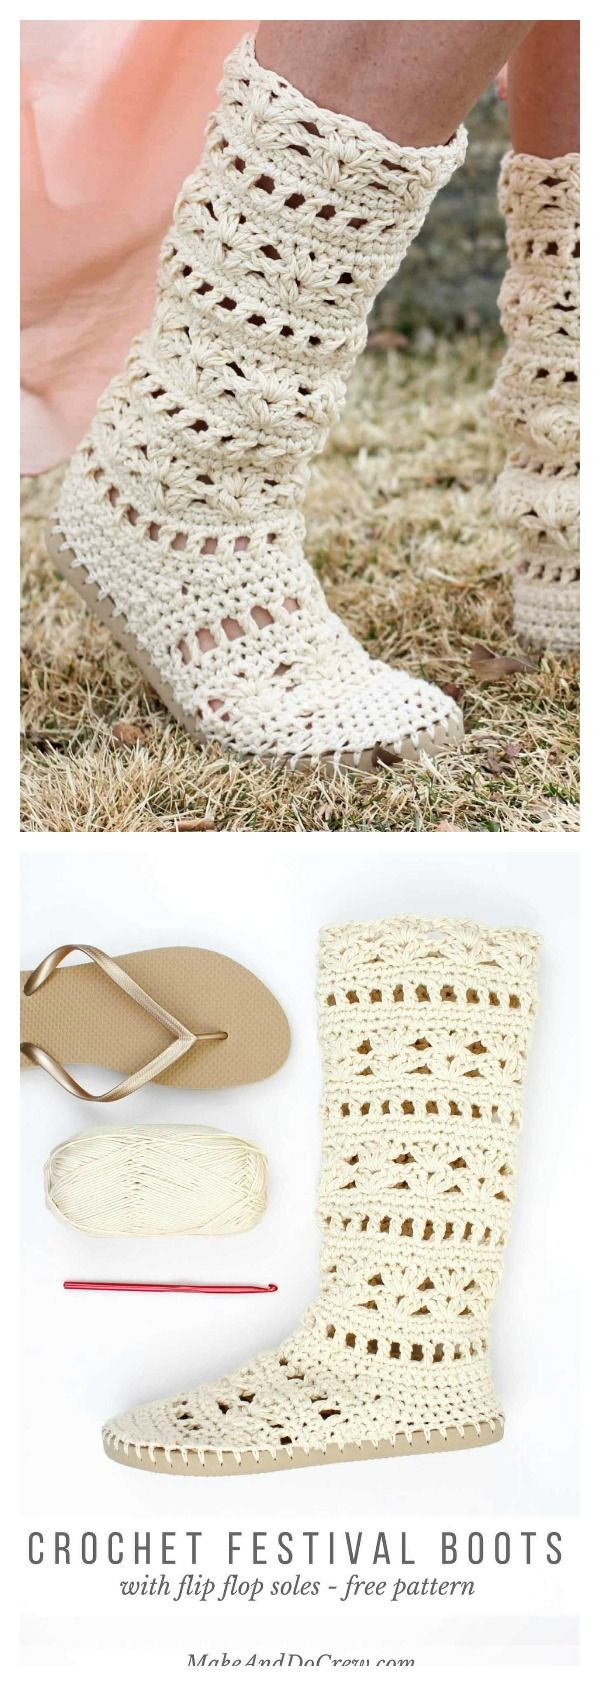 How to Crochet Slippers with Flip Flop Soles | Crochet | Crochet ...